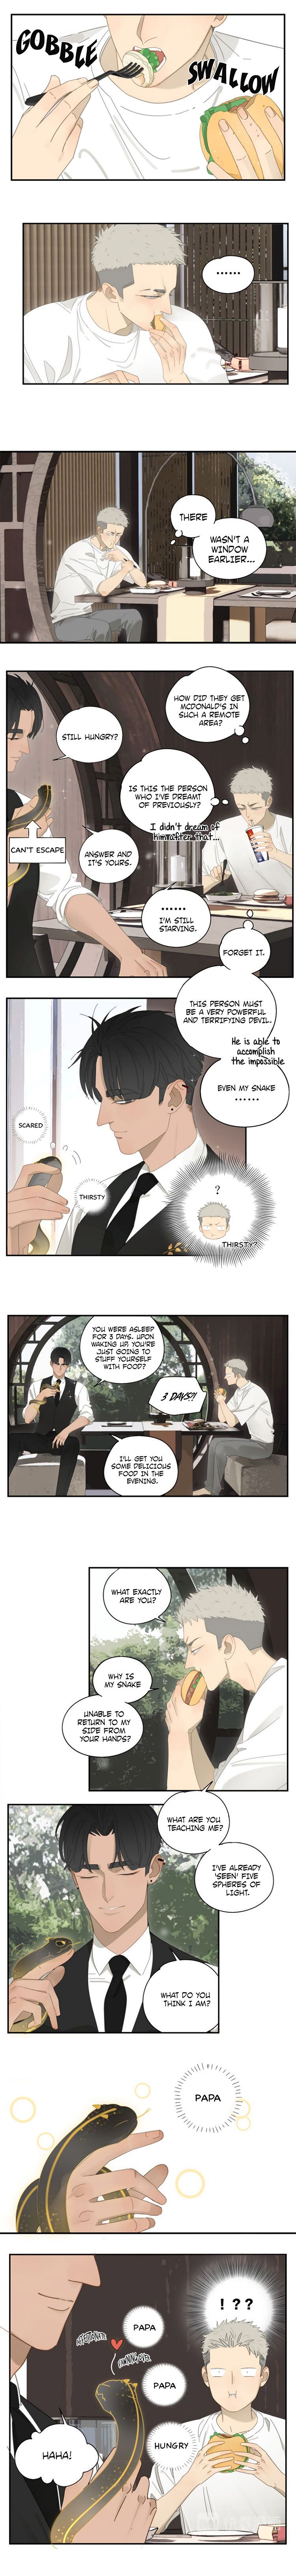 The way to appeal to the Devil - chapter 6 - #2